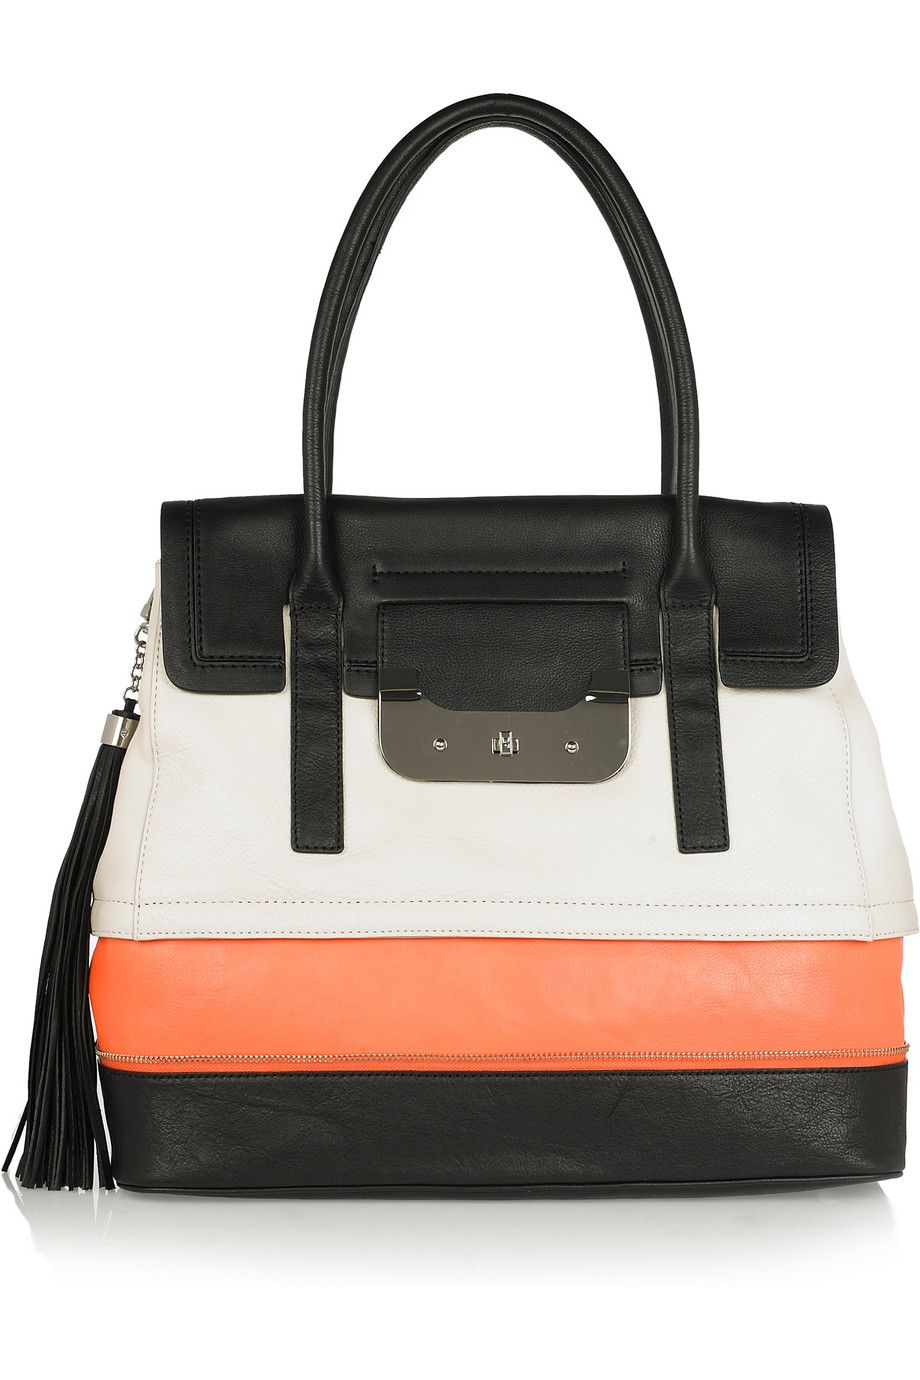 DVF color block leather tote